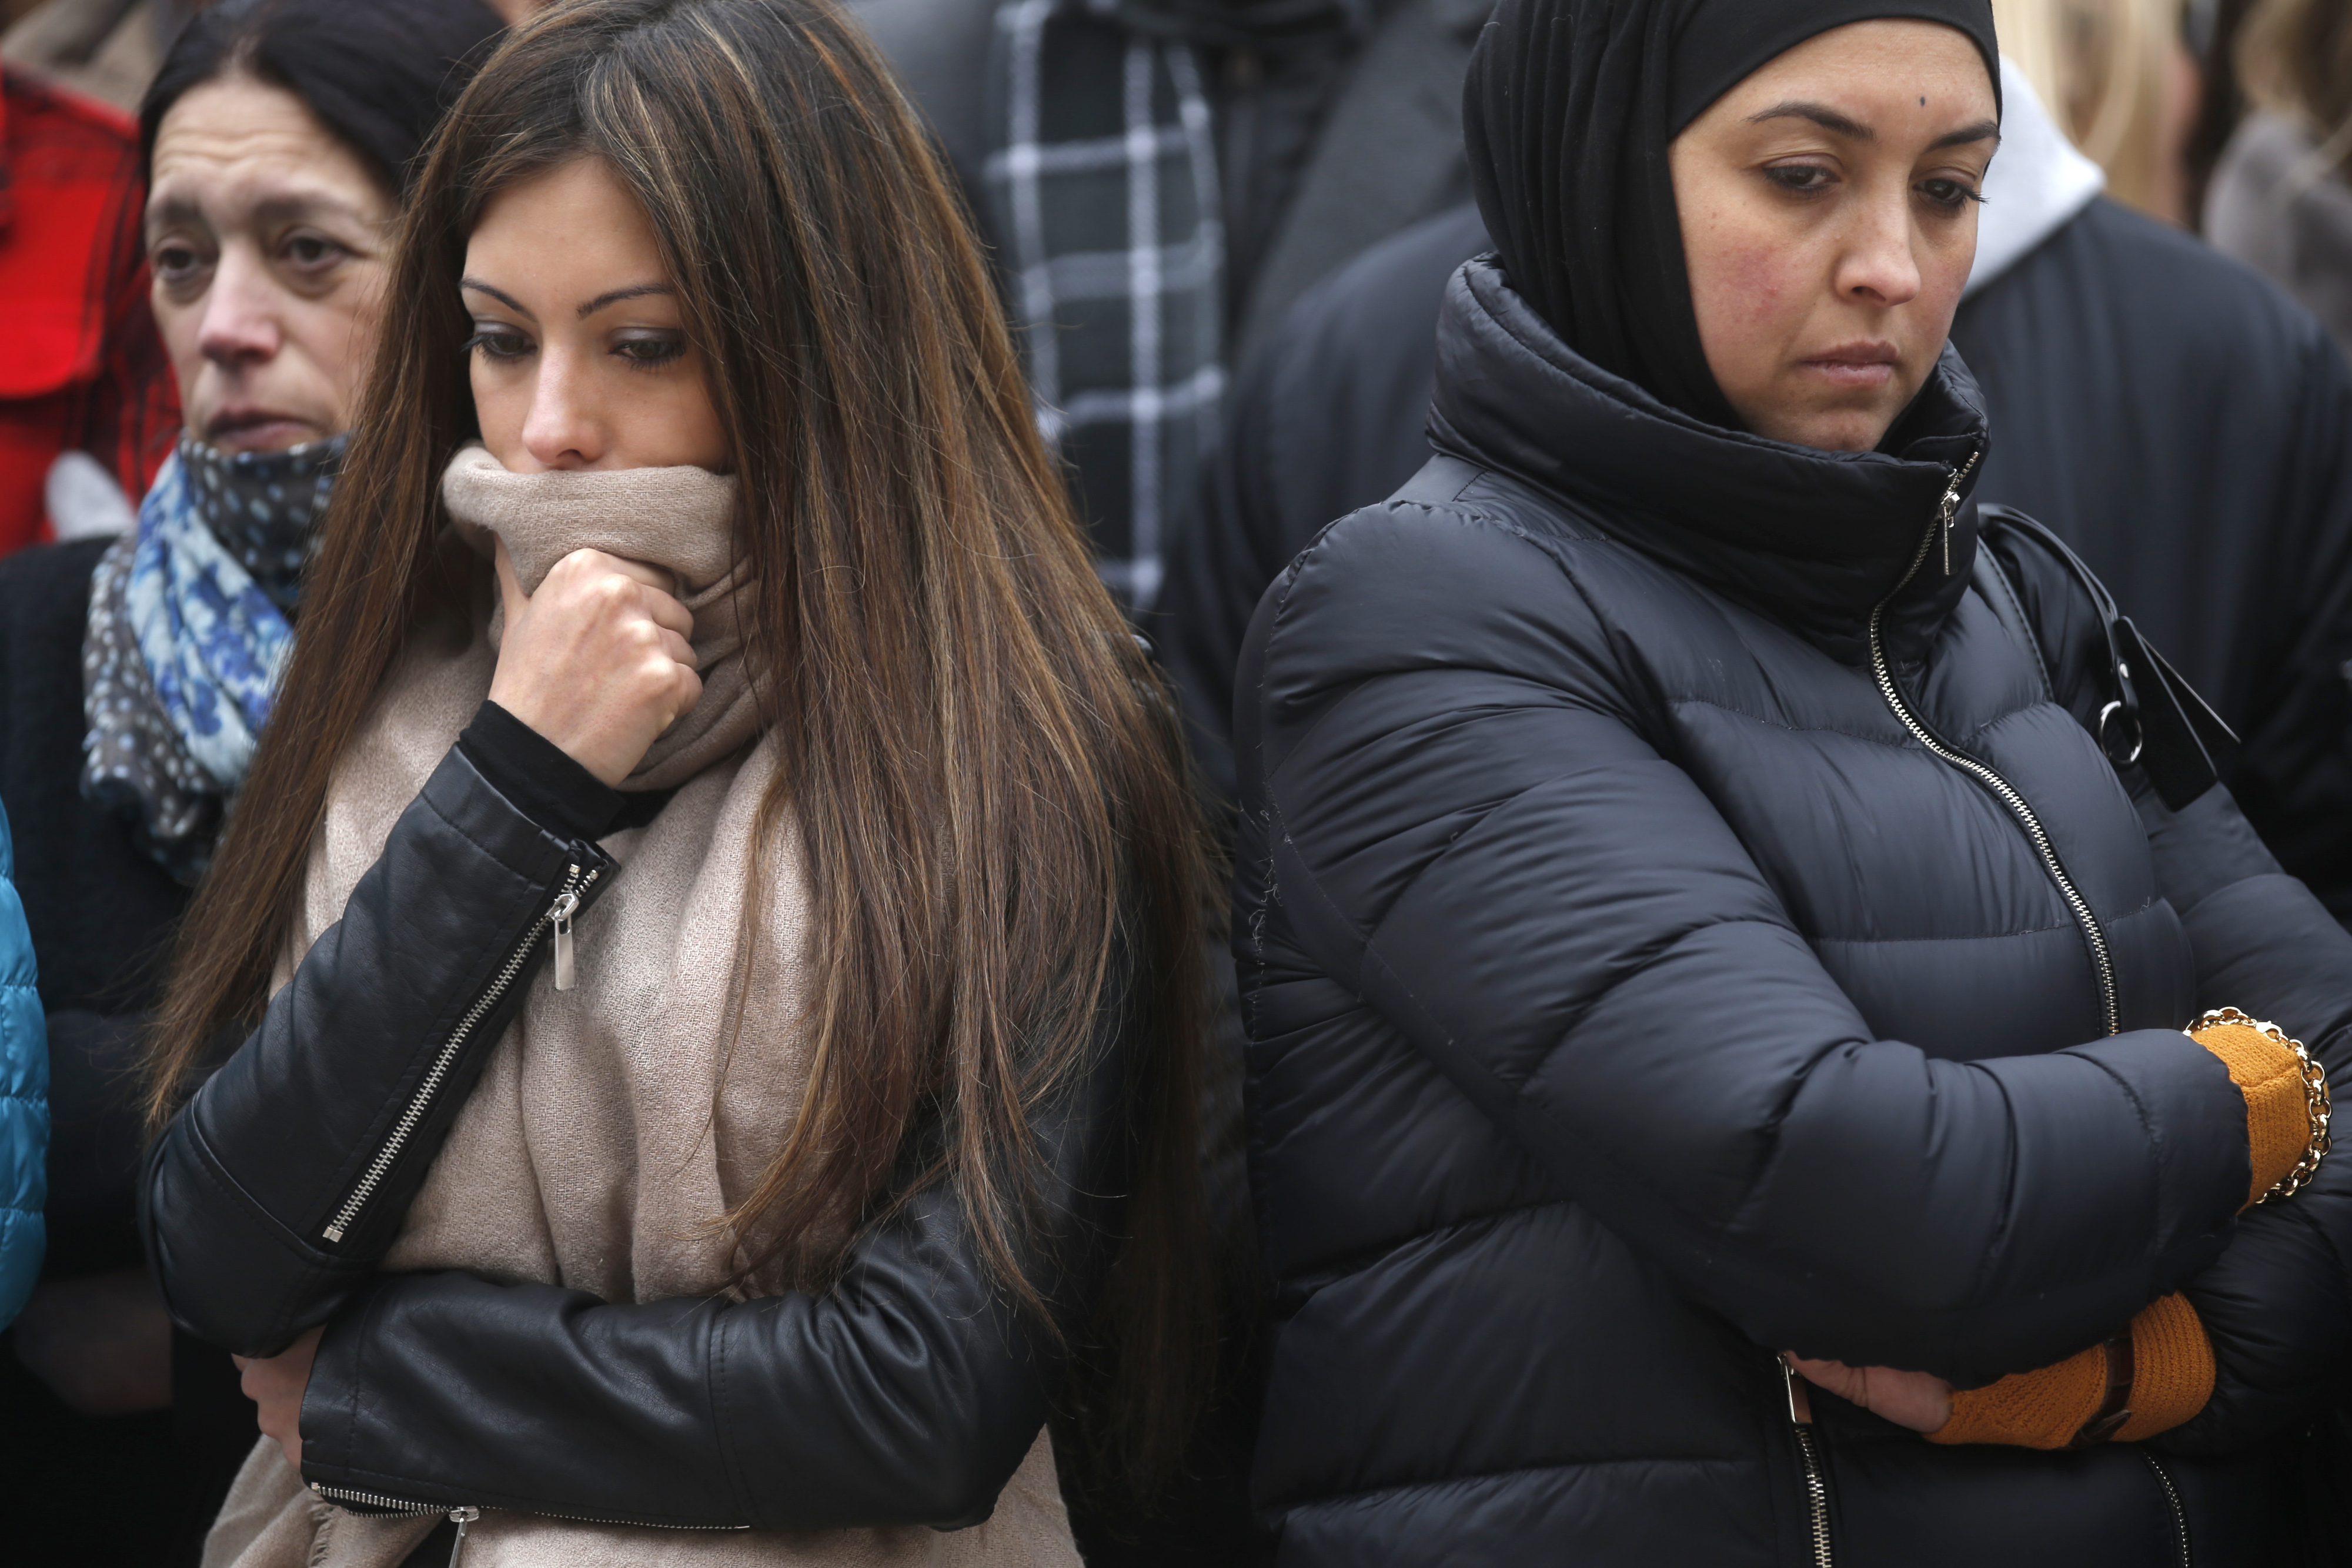 People observe a minute of silence at a street memorial to victims of Tuesday's bombings in Brussels, Belgium, March 24, 2016.